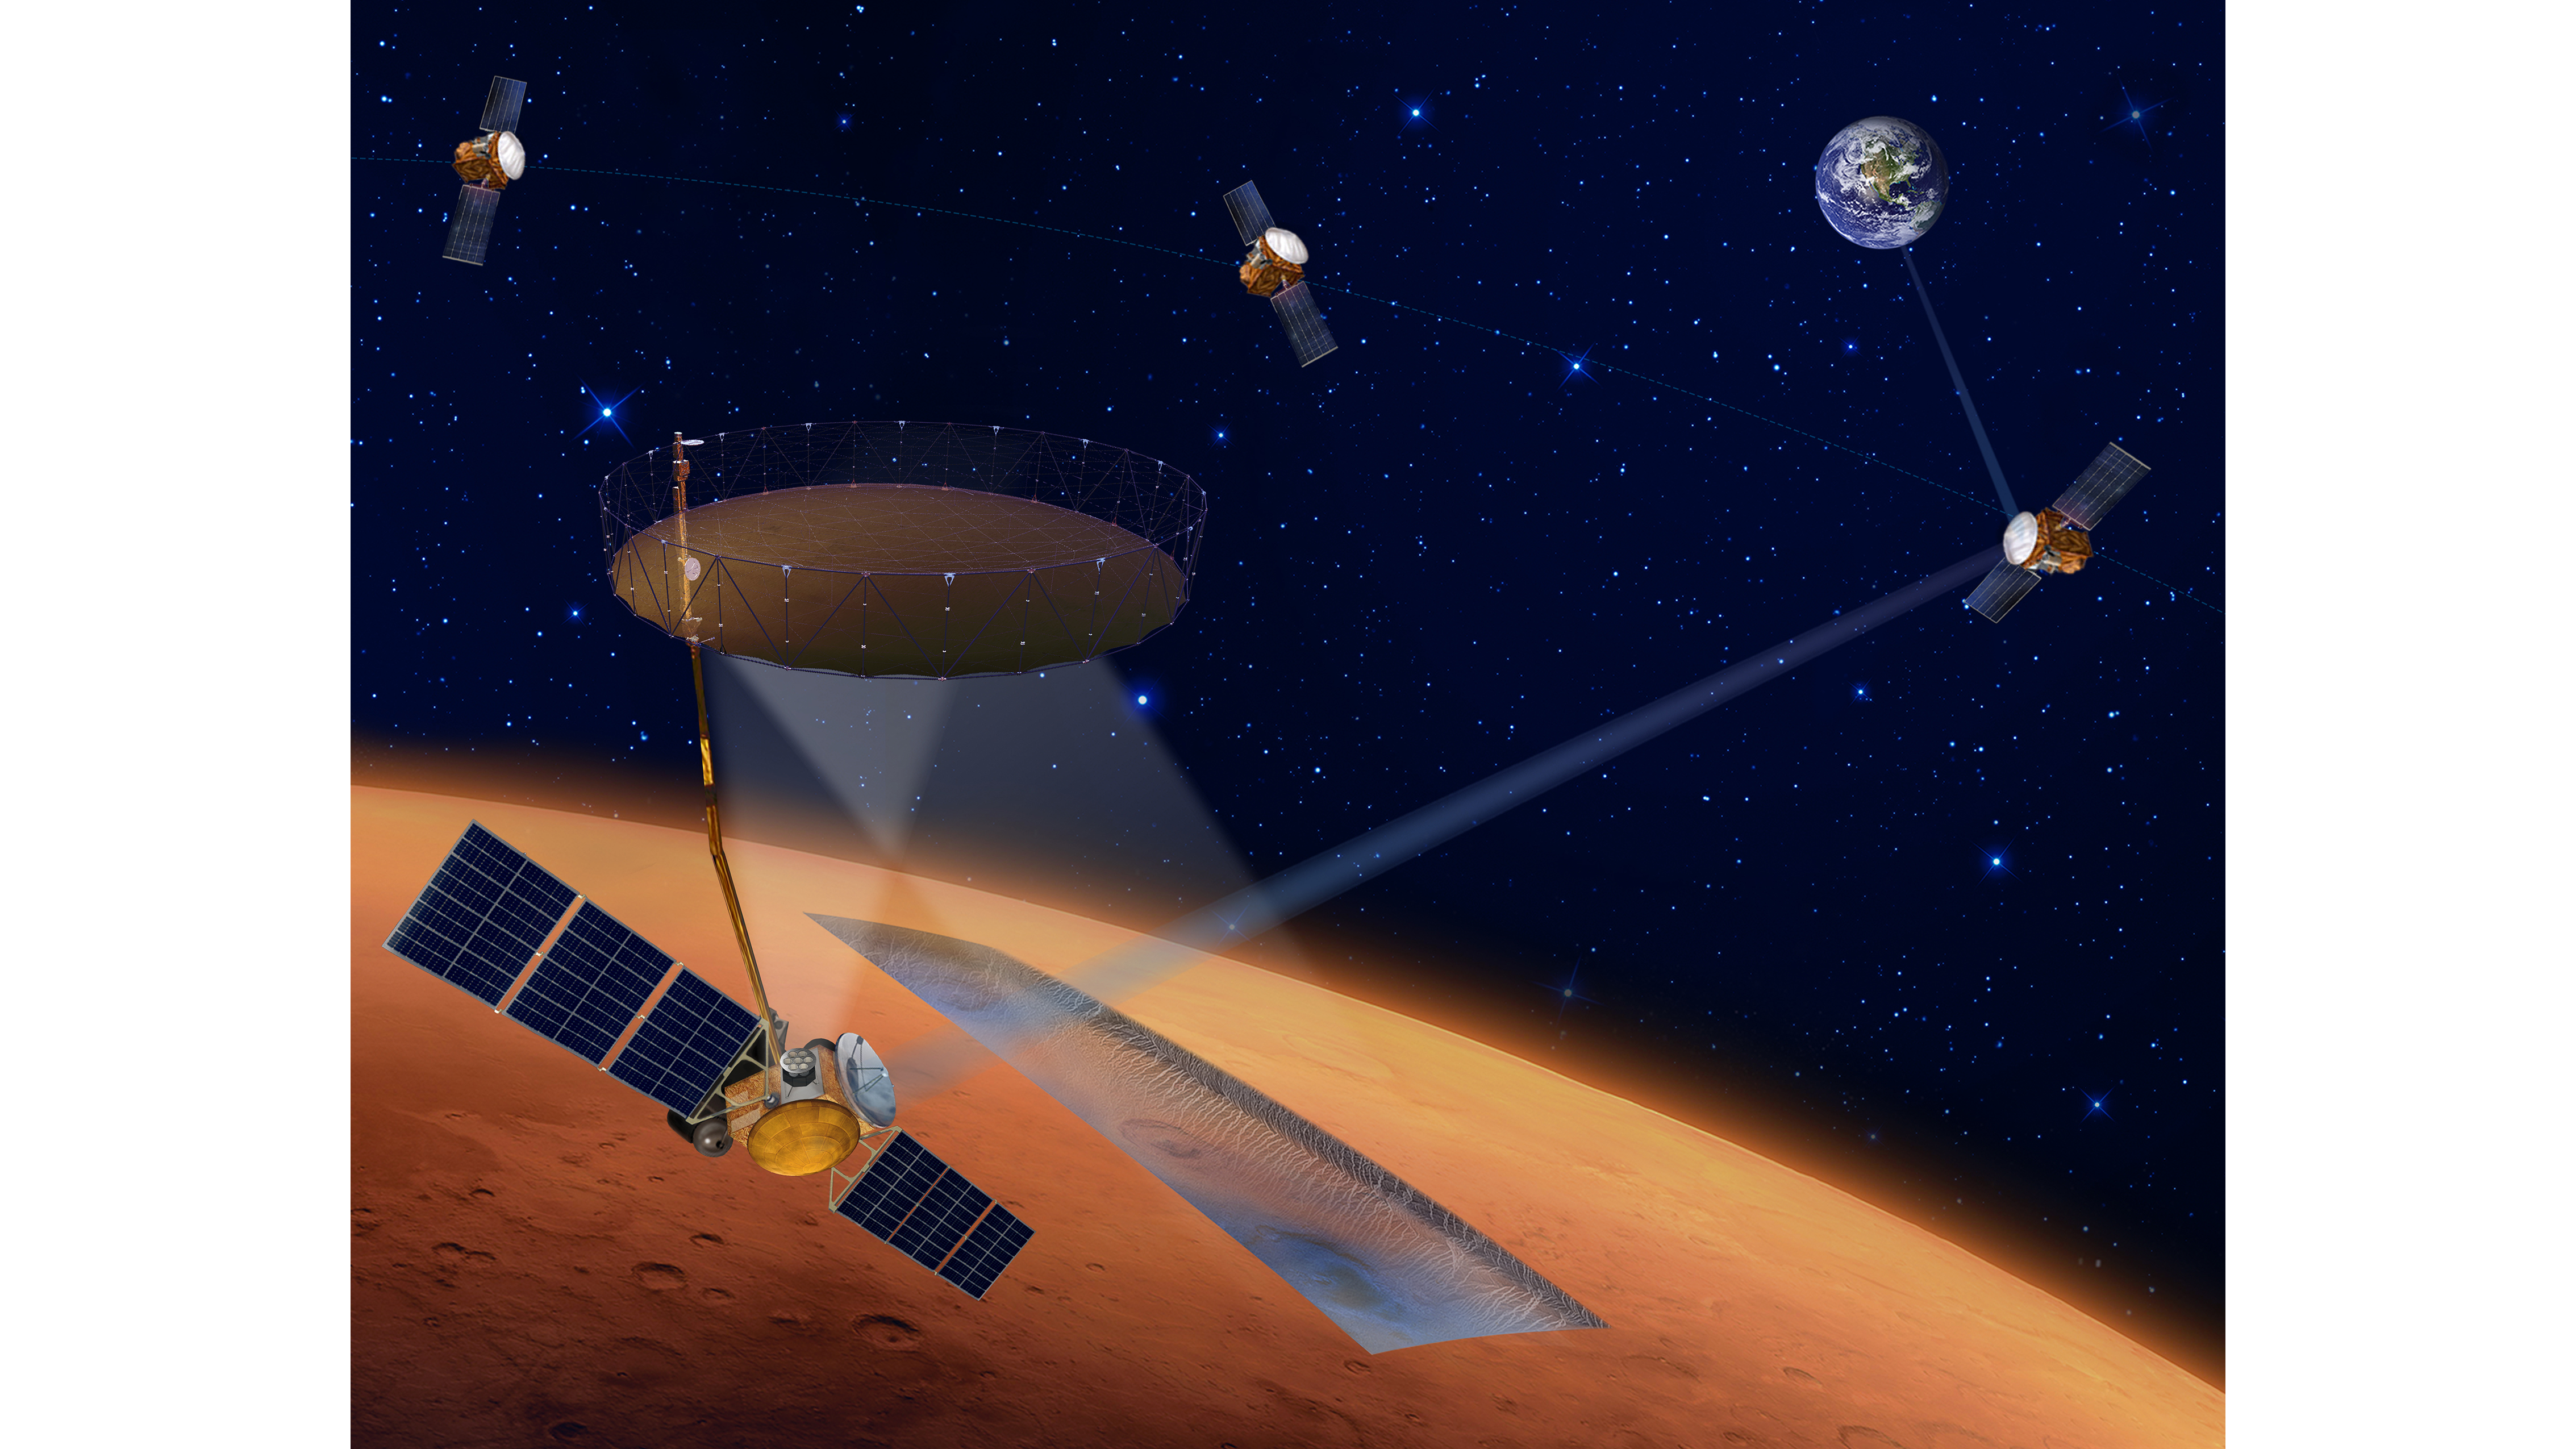 Orbiters could find ice on Mars for future human missions